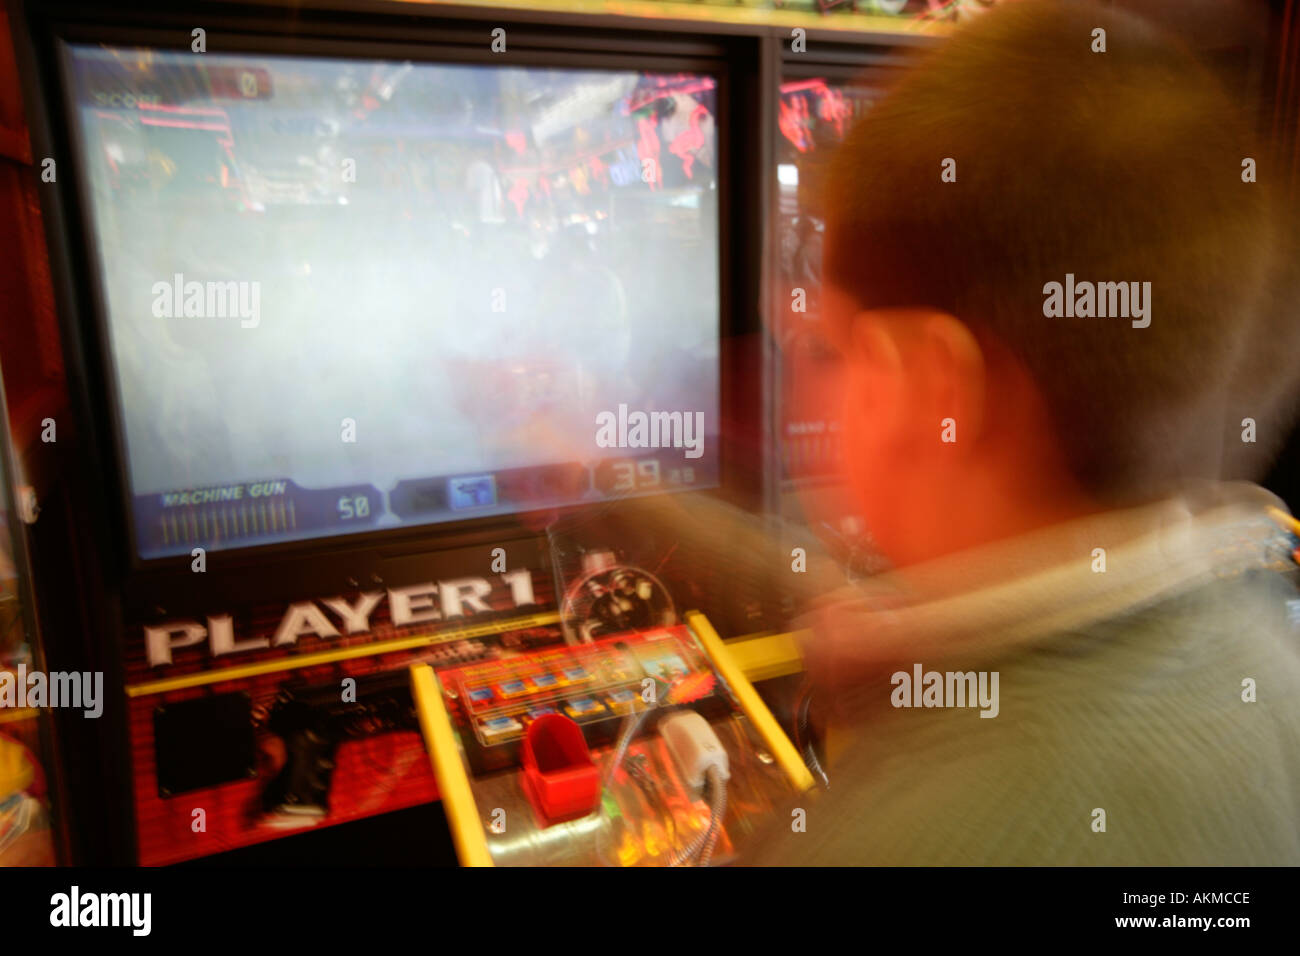 Boy Playing Shooting Game in Arcade - Stock Image